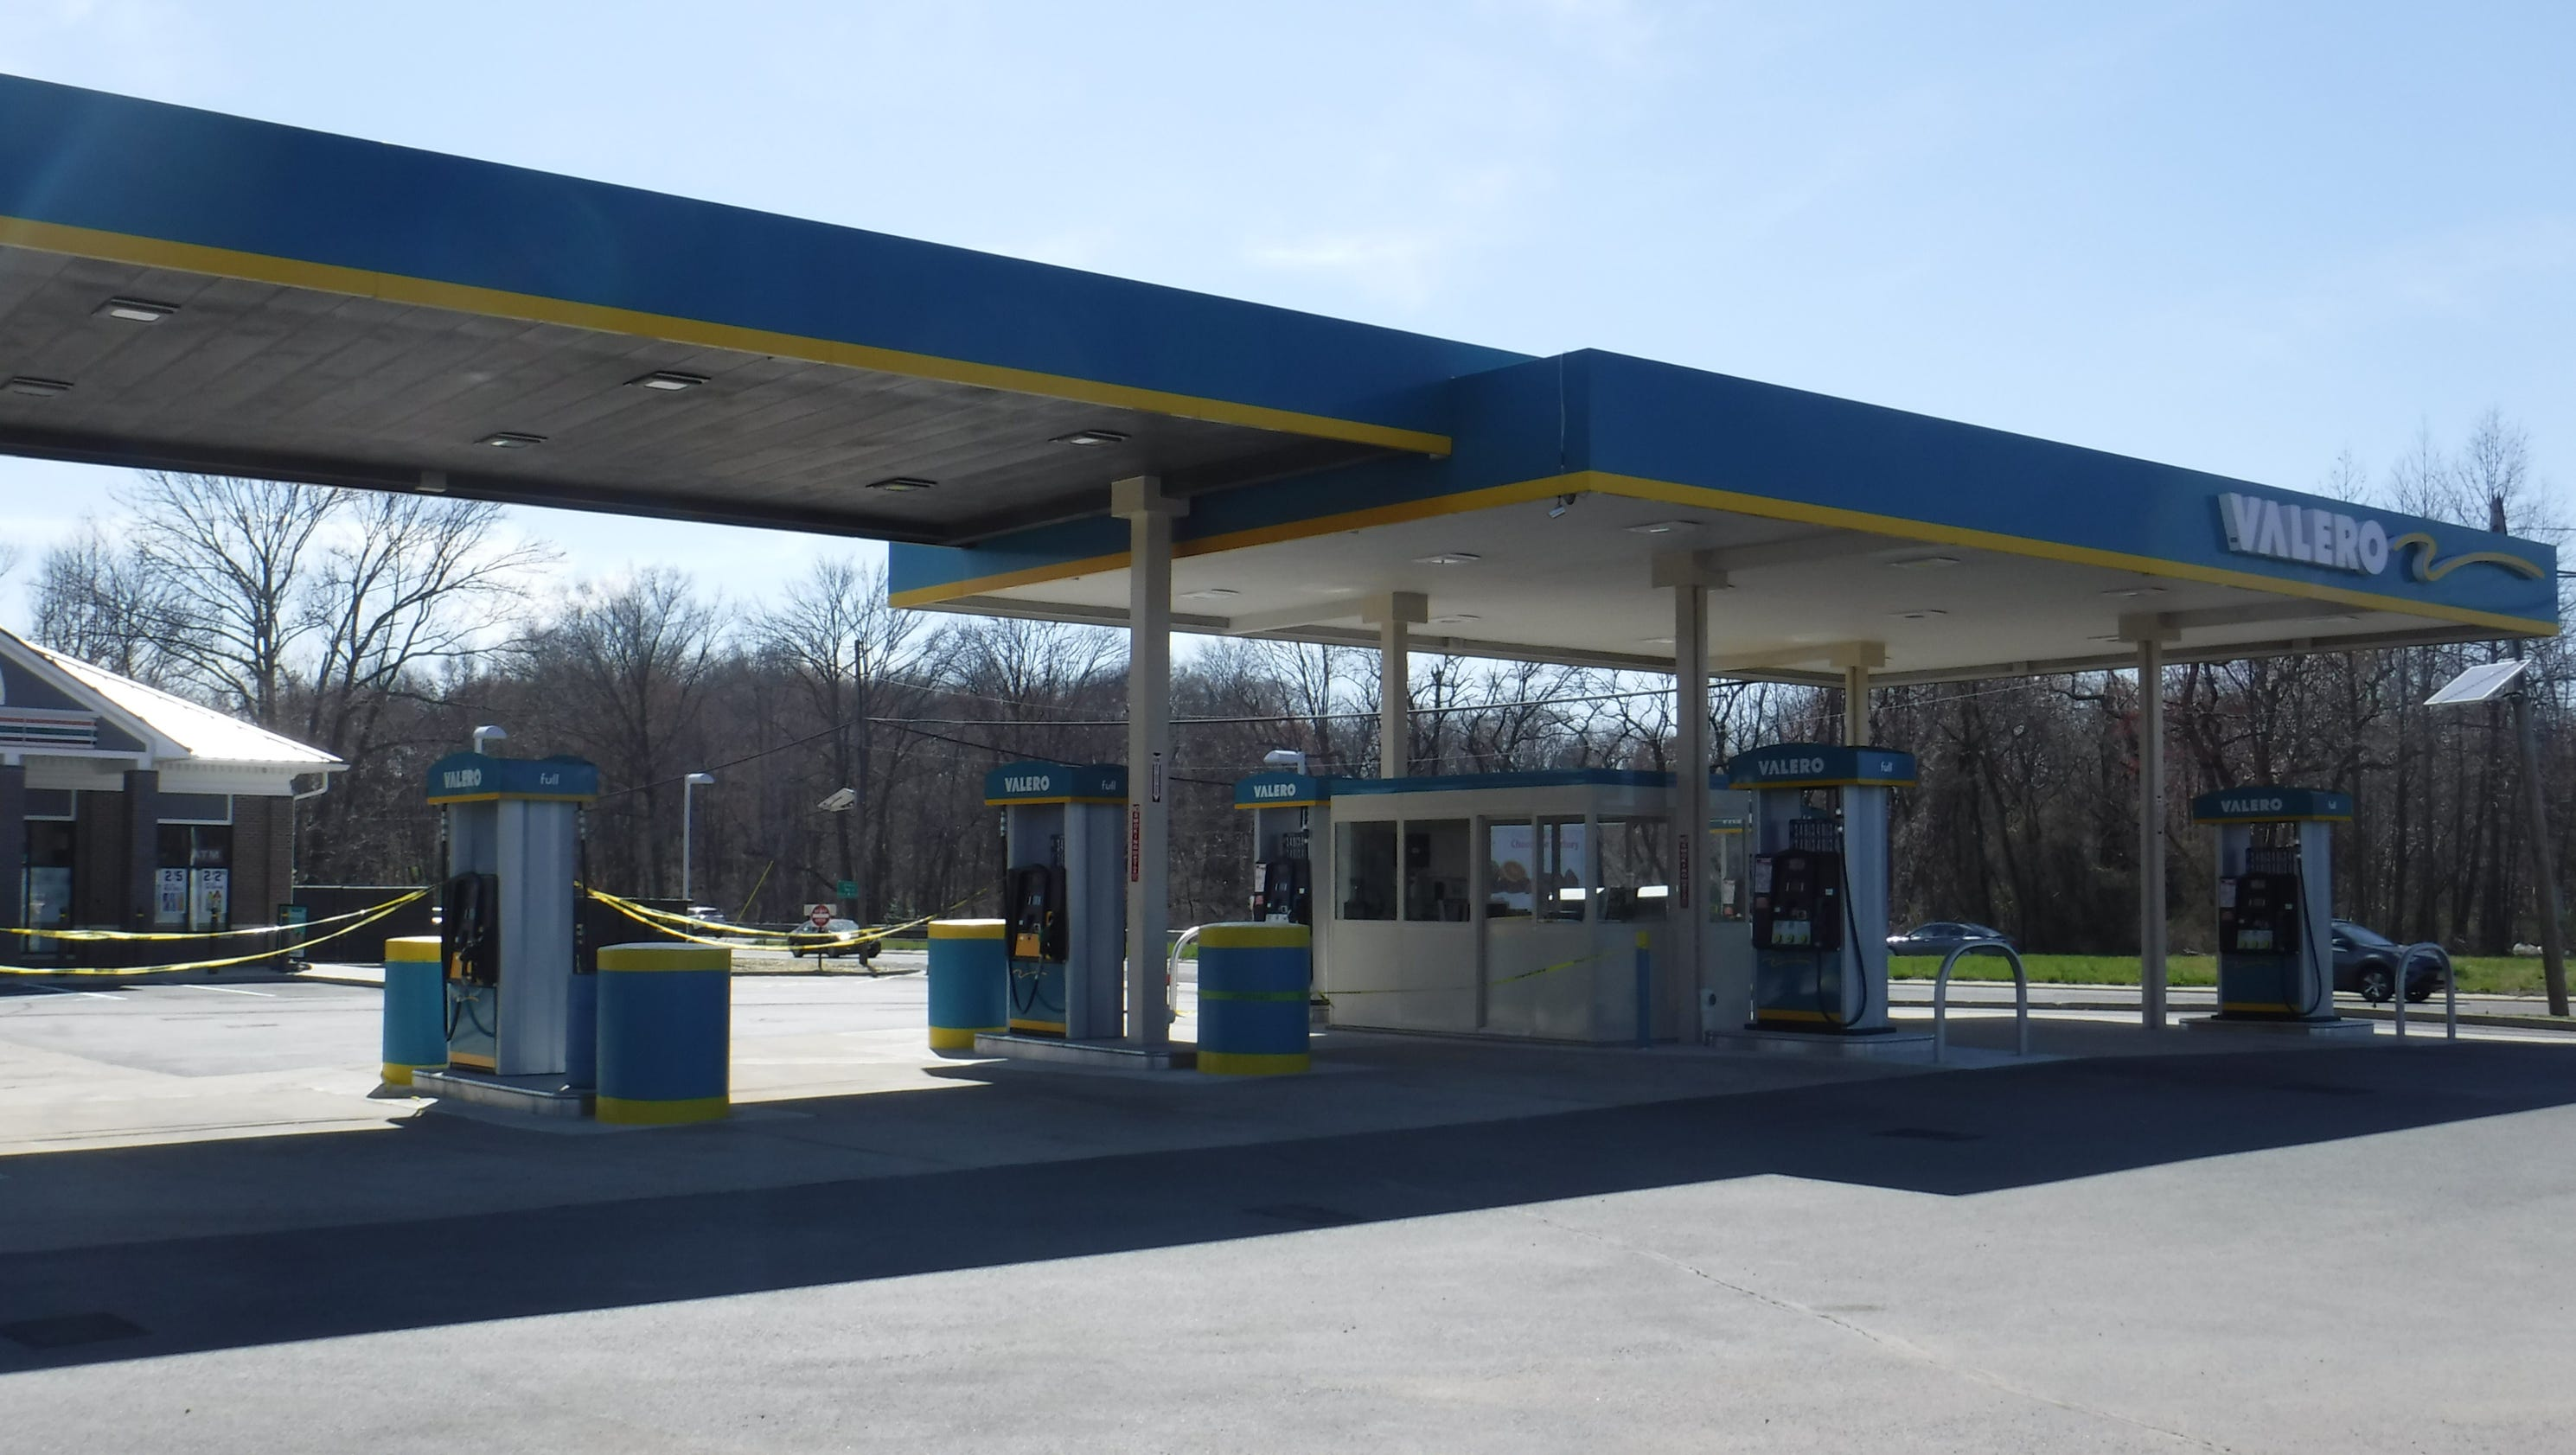 New 7 eleven valero gas station opens in cranbury colourmoves Choice Image